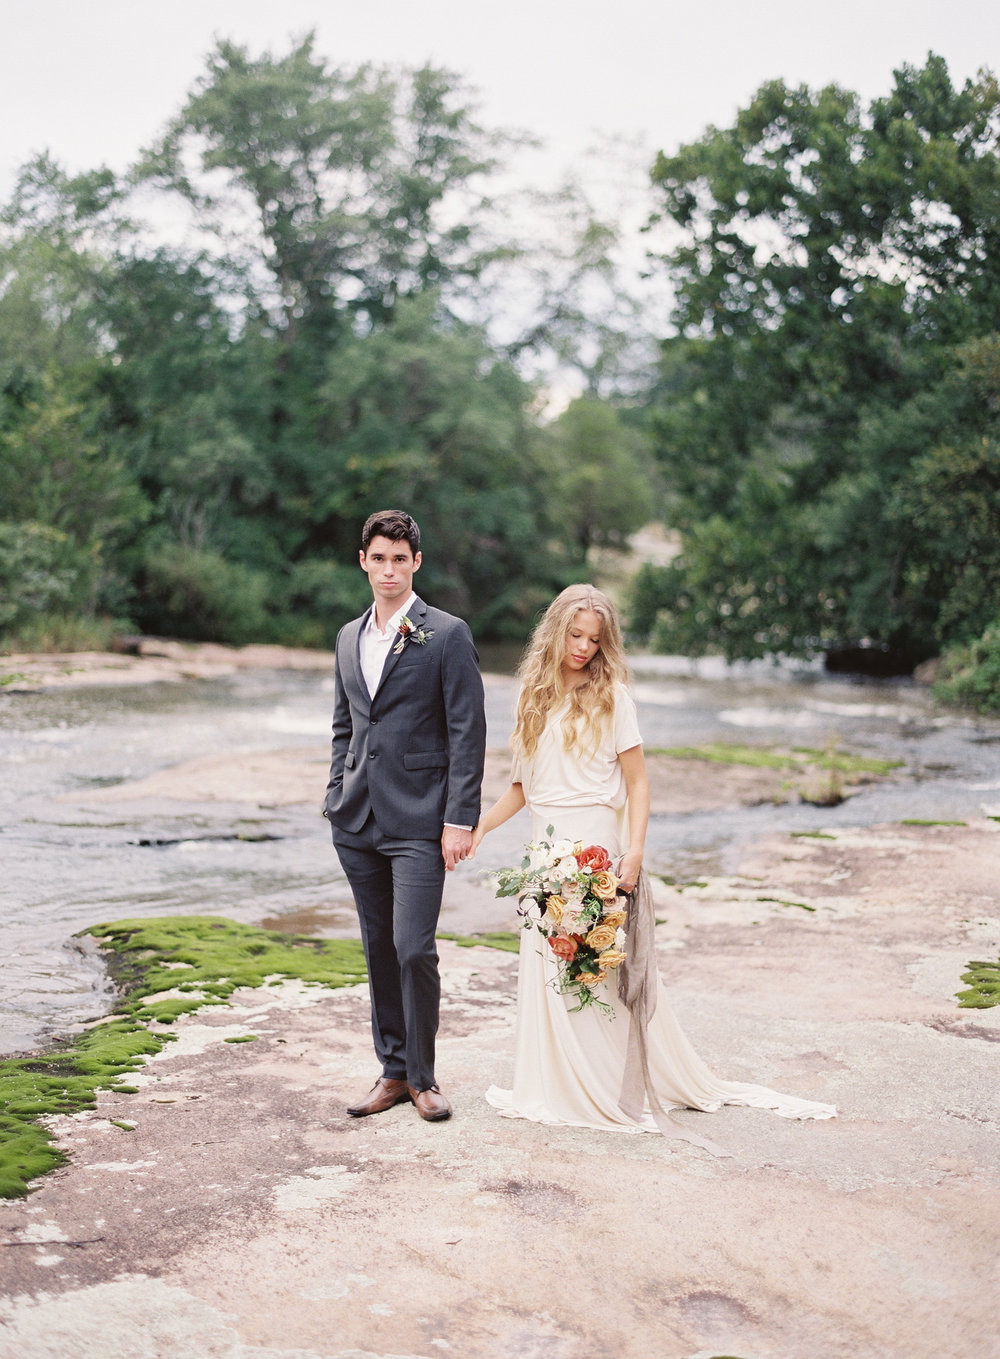 Autumn Wedding Inspiration at the Mill at Fine Creek by Richmond Virginia Wedding Planner East Made Event Company and Michael and Carina Photography24.jpg